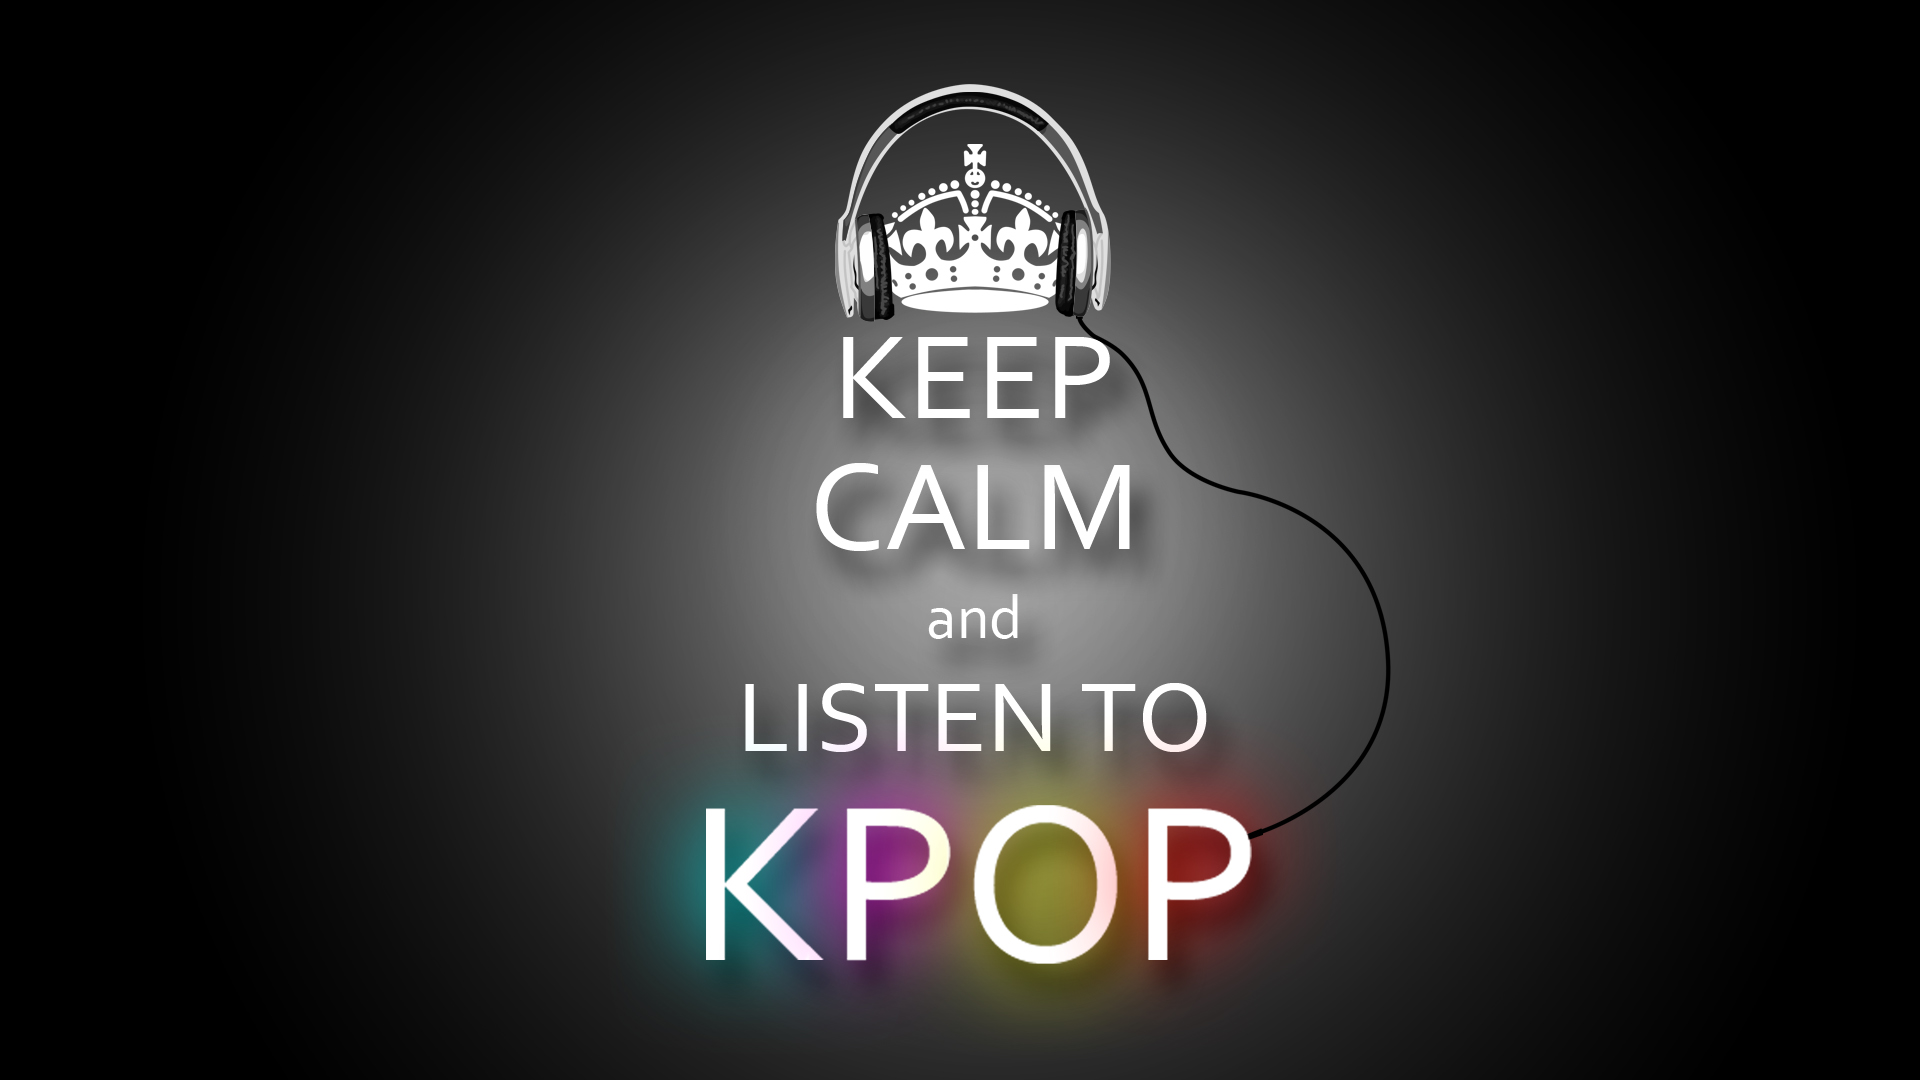 Keep Calm And Listen To Kpop By An Iroc Dyyb Desktop Wallpaper